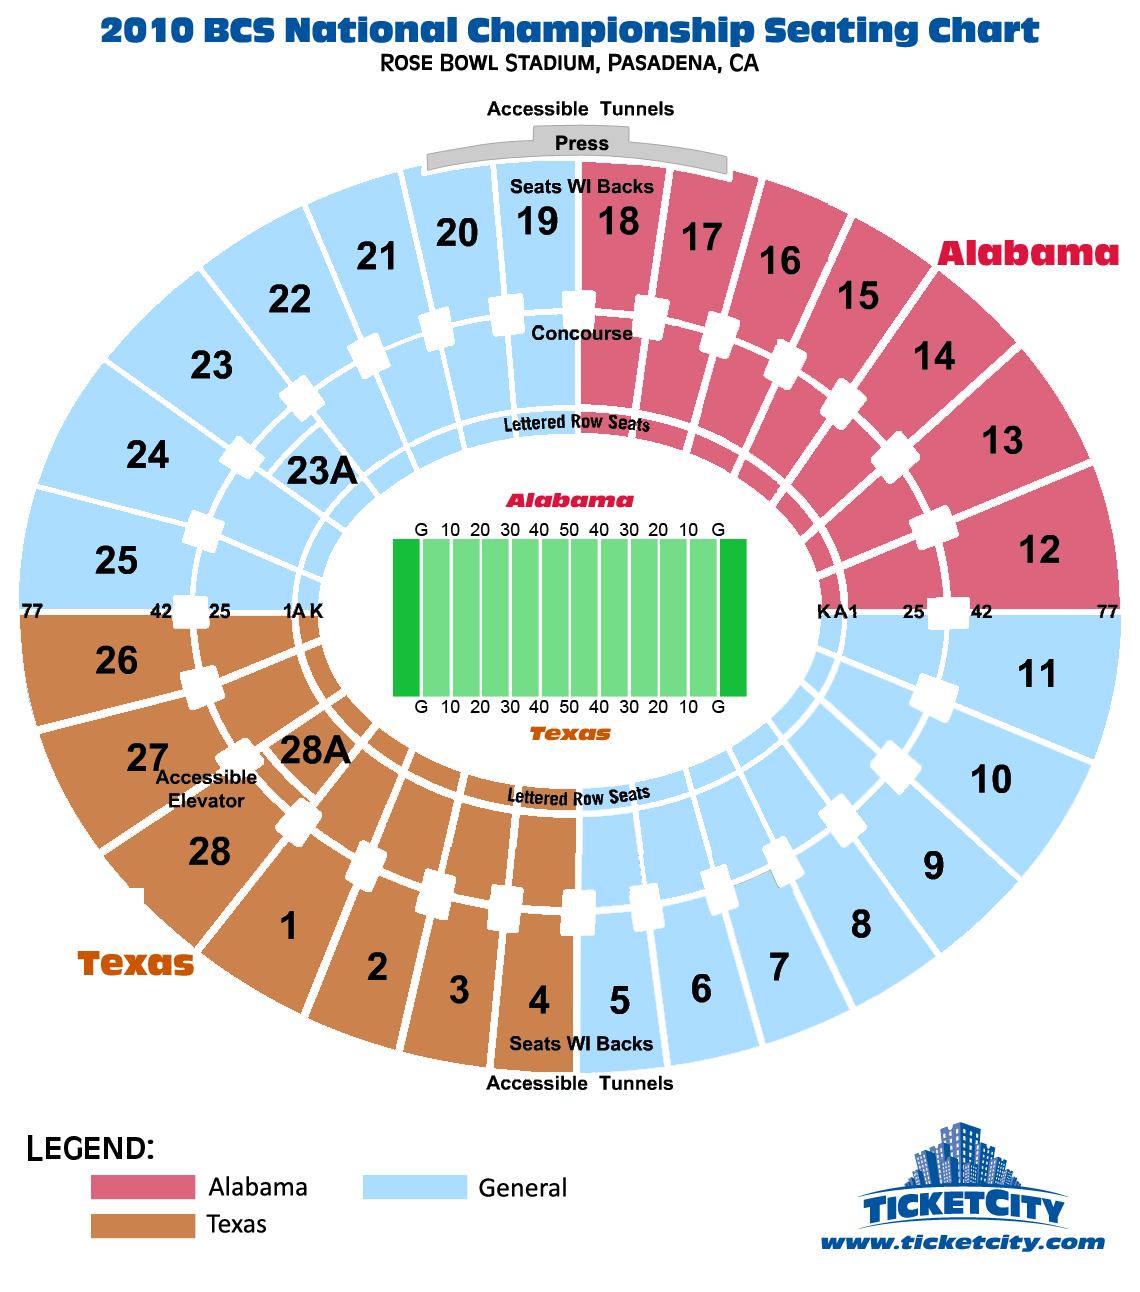 bcs national championship rose bowl seating chart